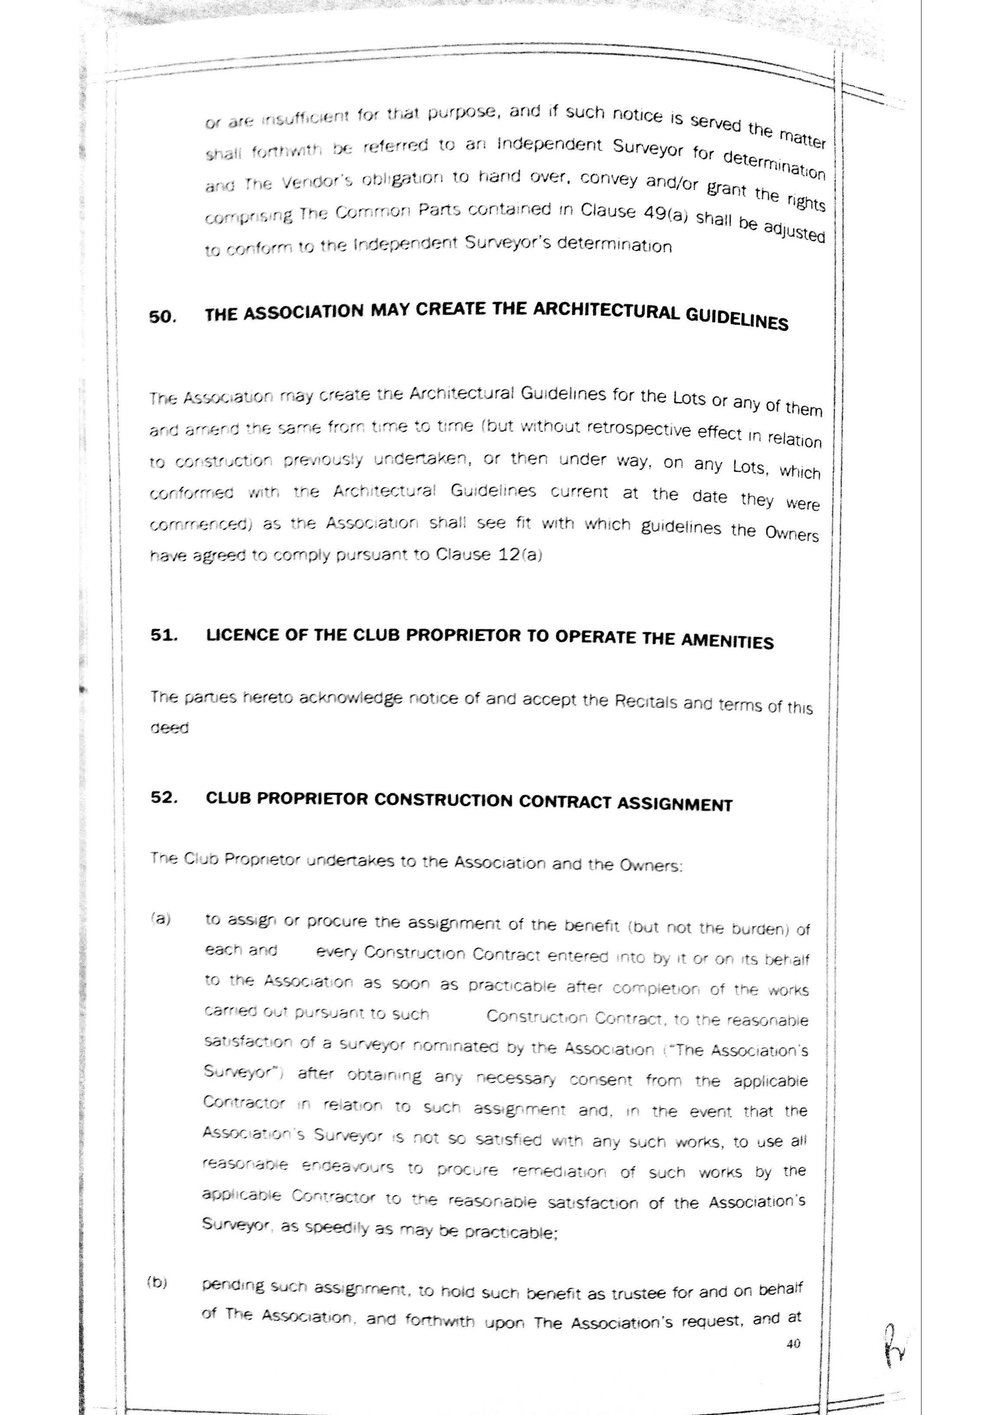 MC Ind p39 onwards_Page_02.jpg